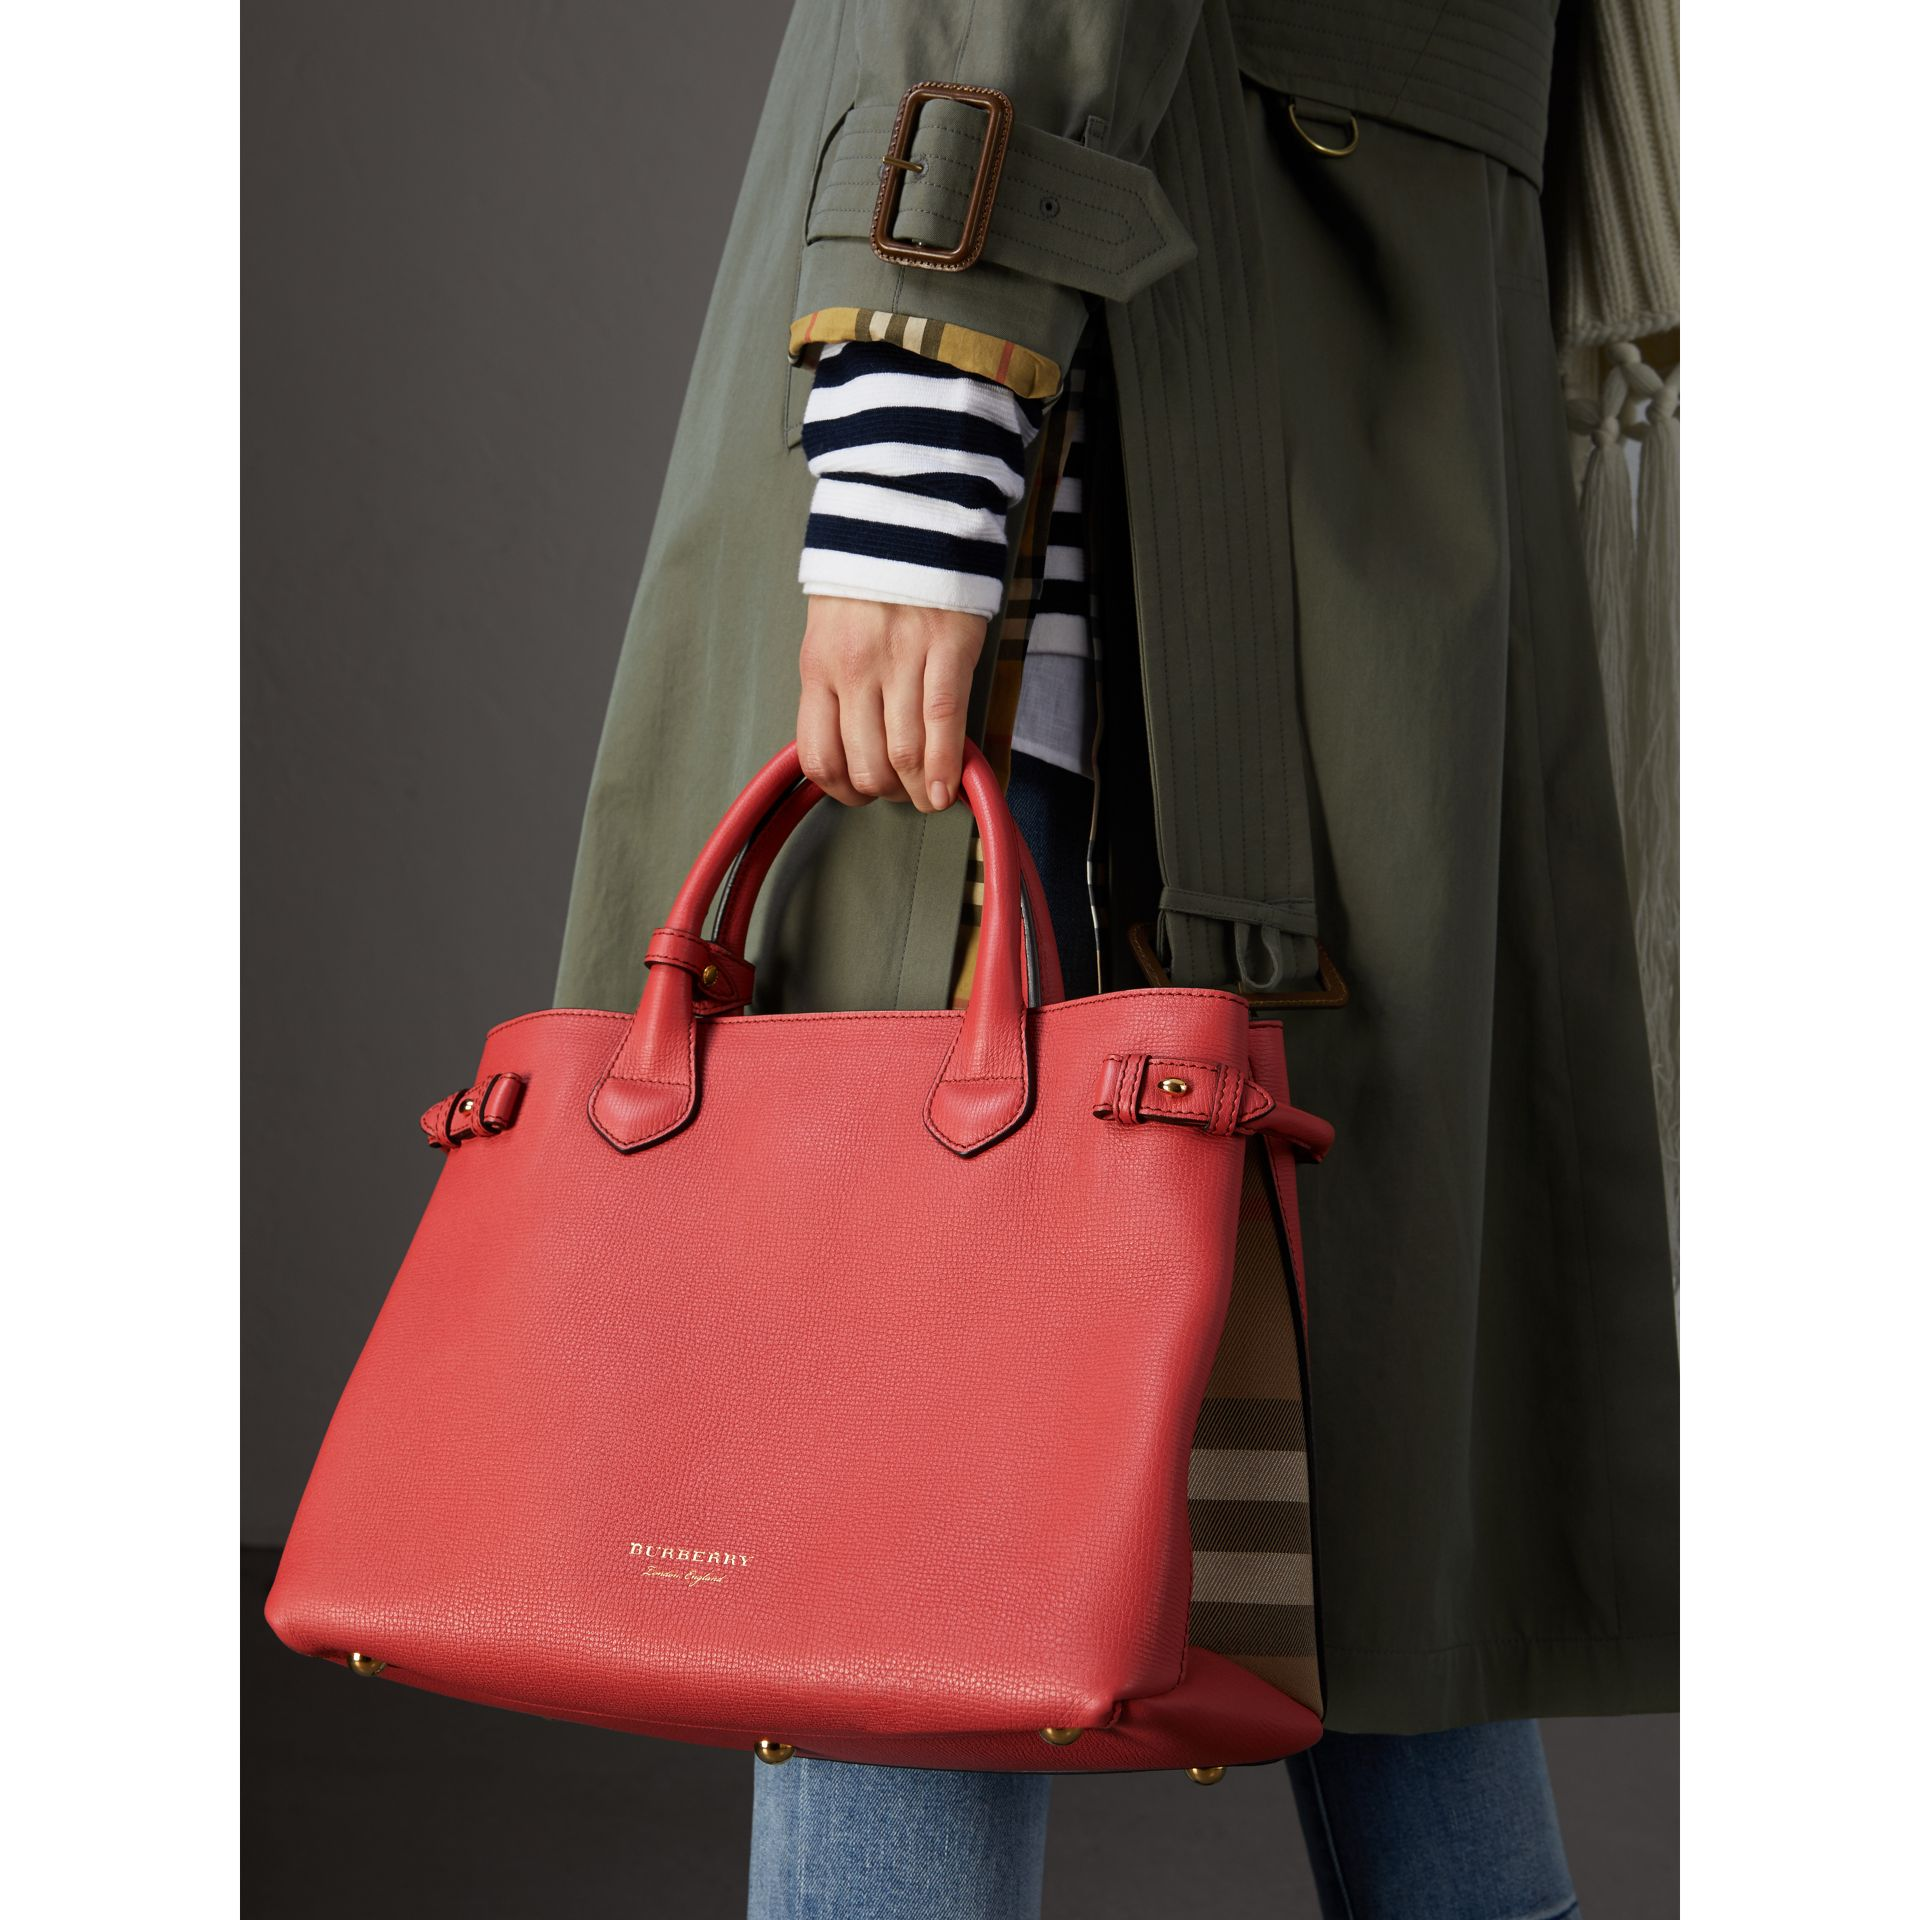 Sac The Banner moyen en cuir et coton House check (Cannelle Rouge) - Femme | Burberry - photo de la galerie 2